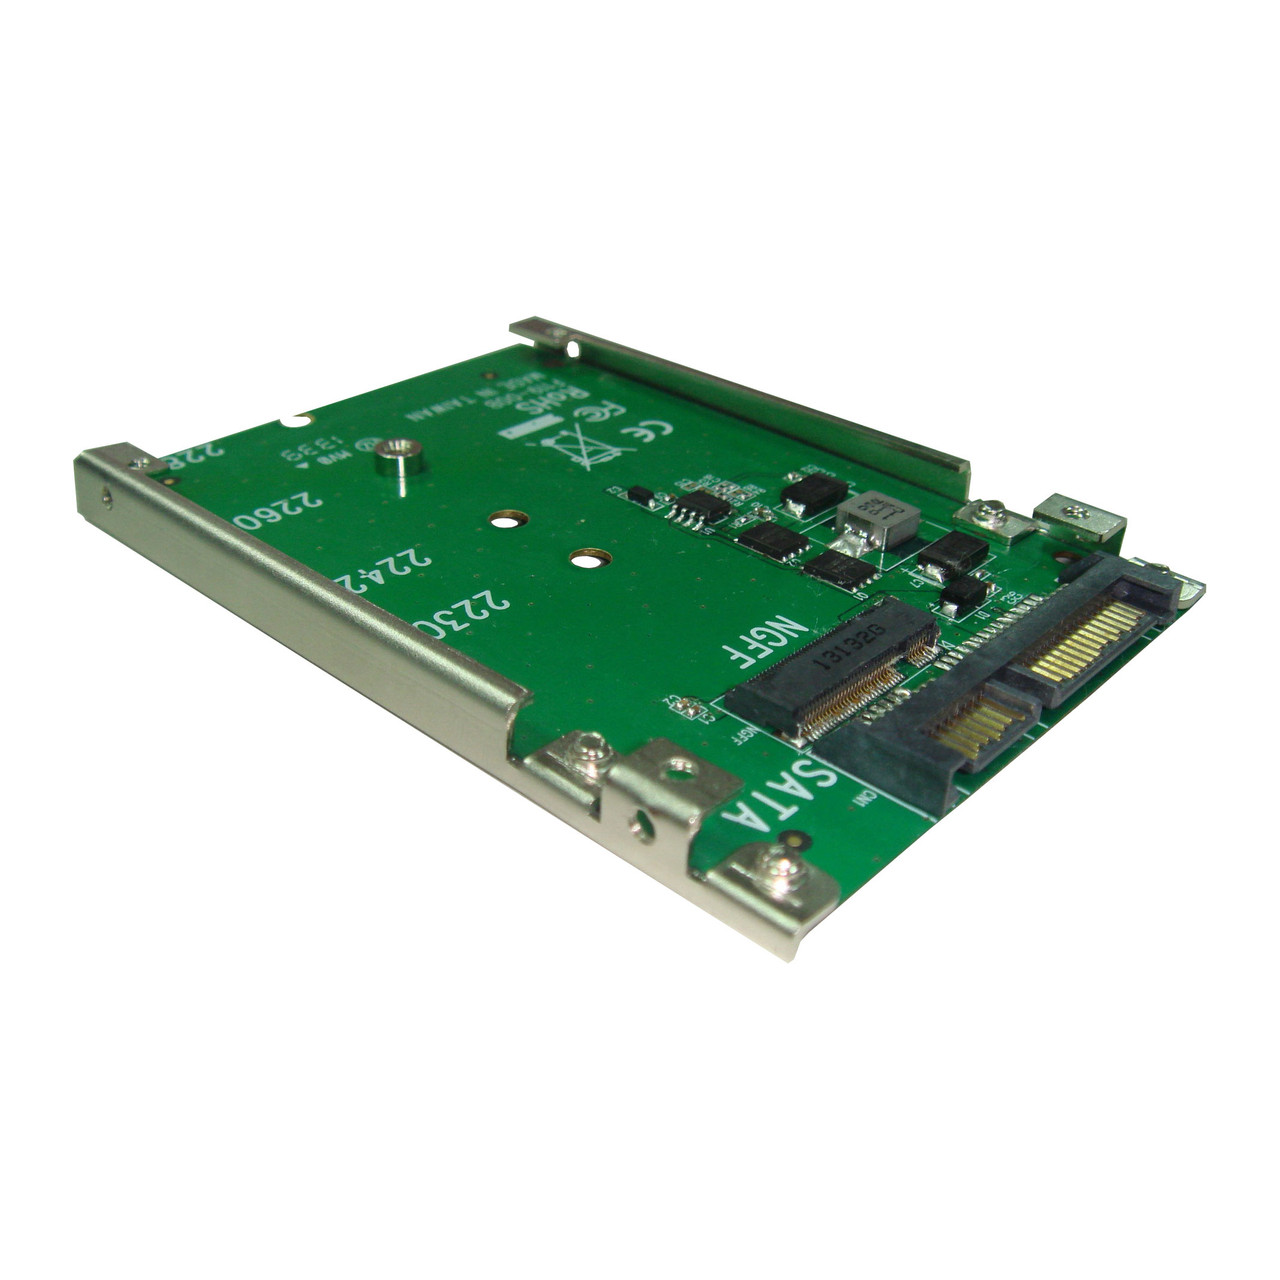 Lycom DT-119, Converts M.2 SATA SSD to 2.5 inch